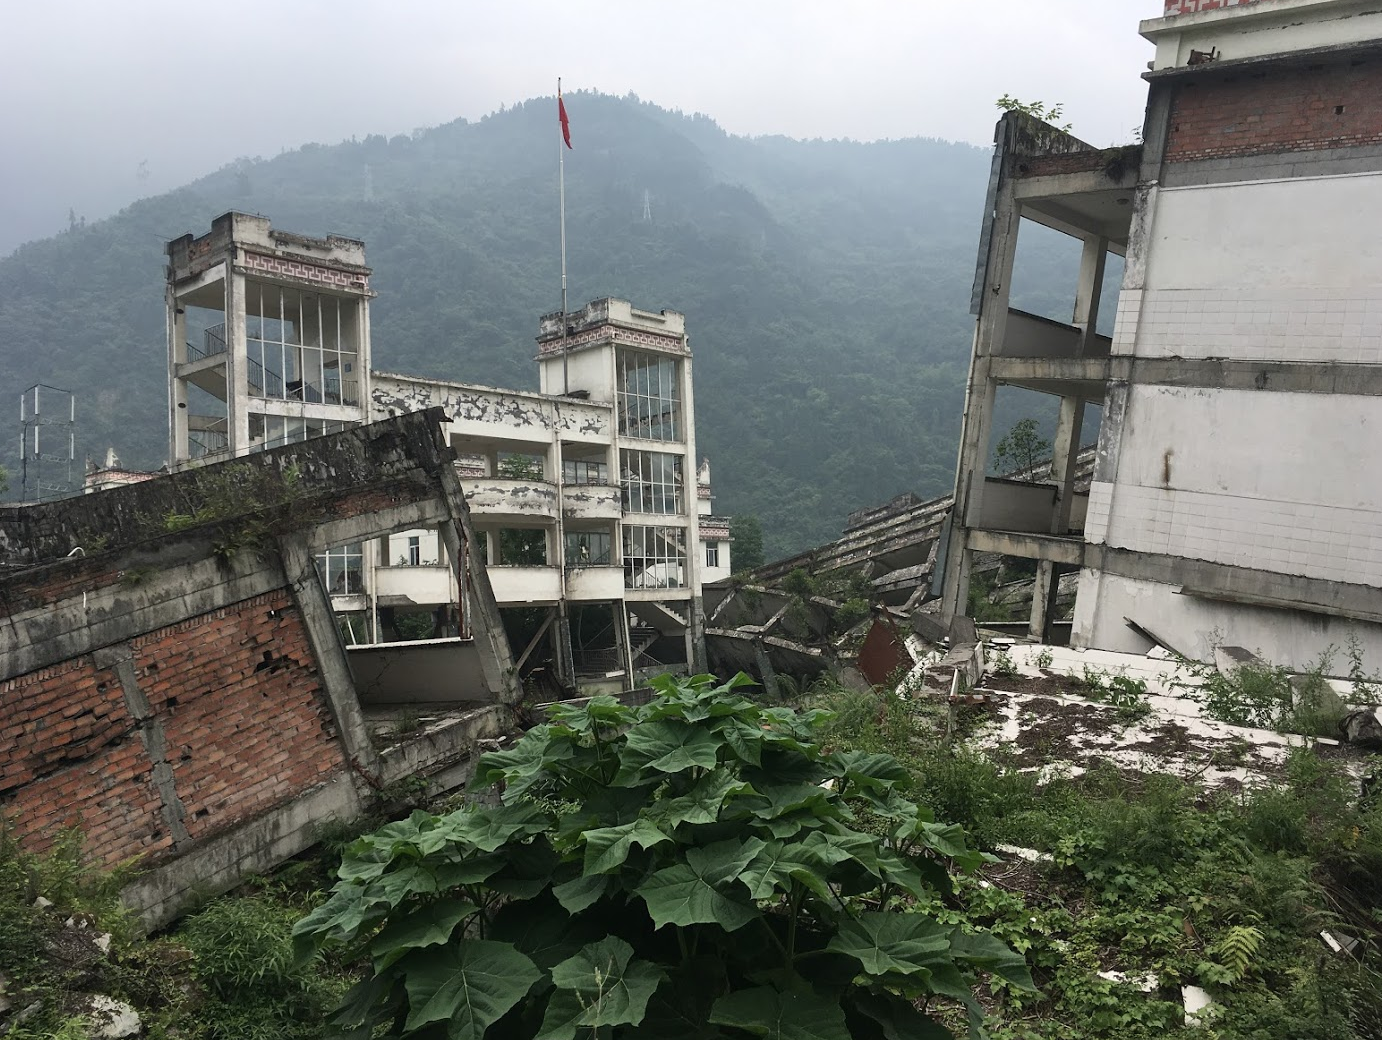 Sichuan Earthquake Museum